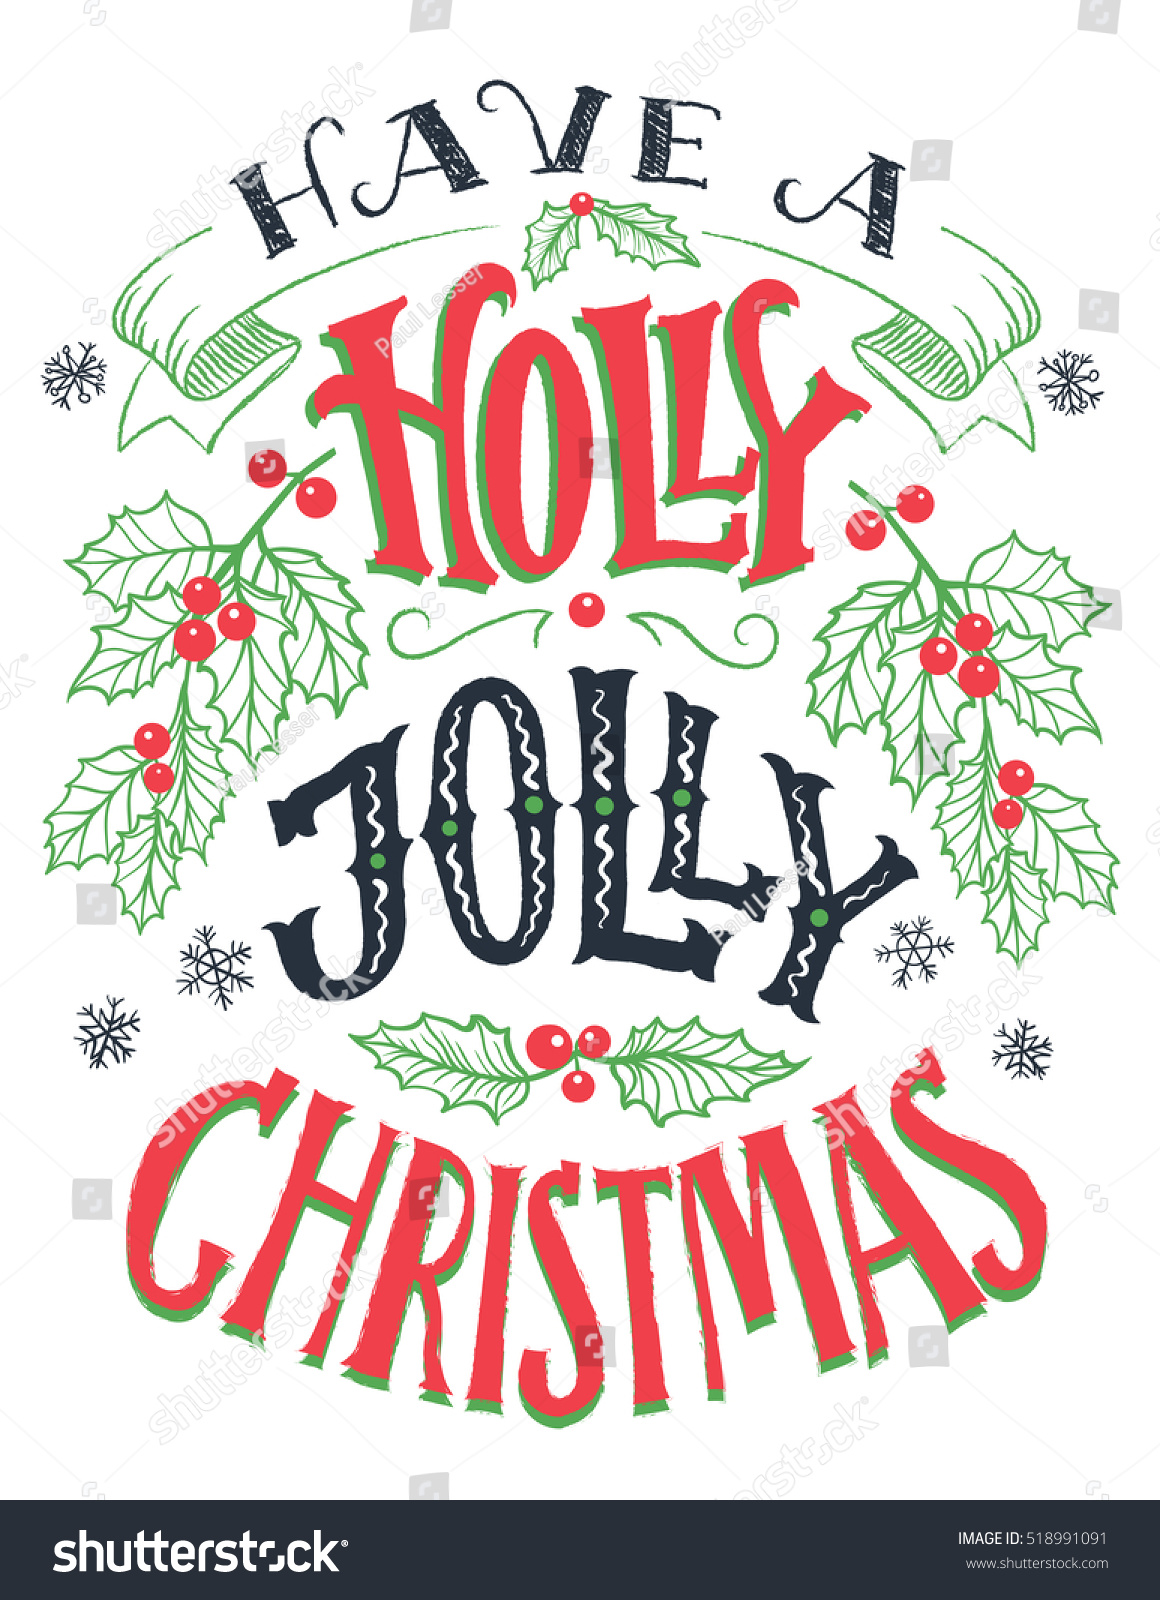 Have Holly Jolly Christmas Vintage Hand Stock Vector (Royalty Free ...